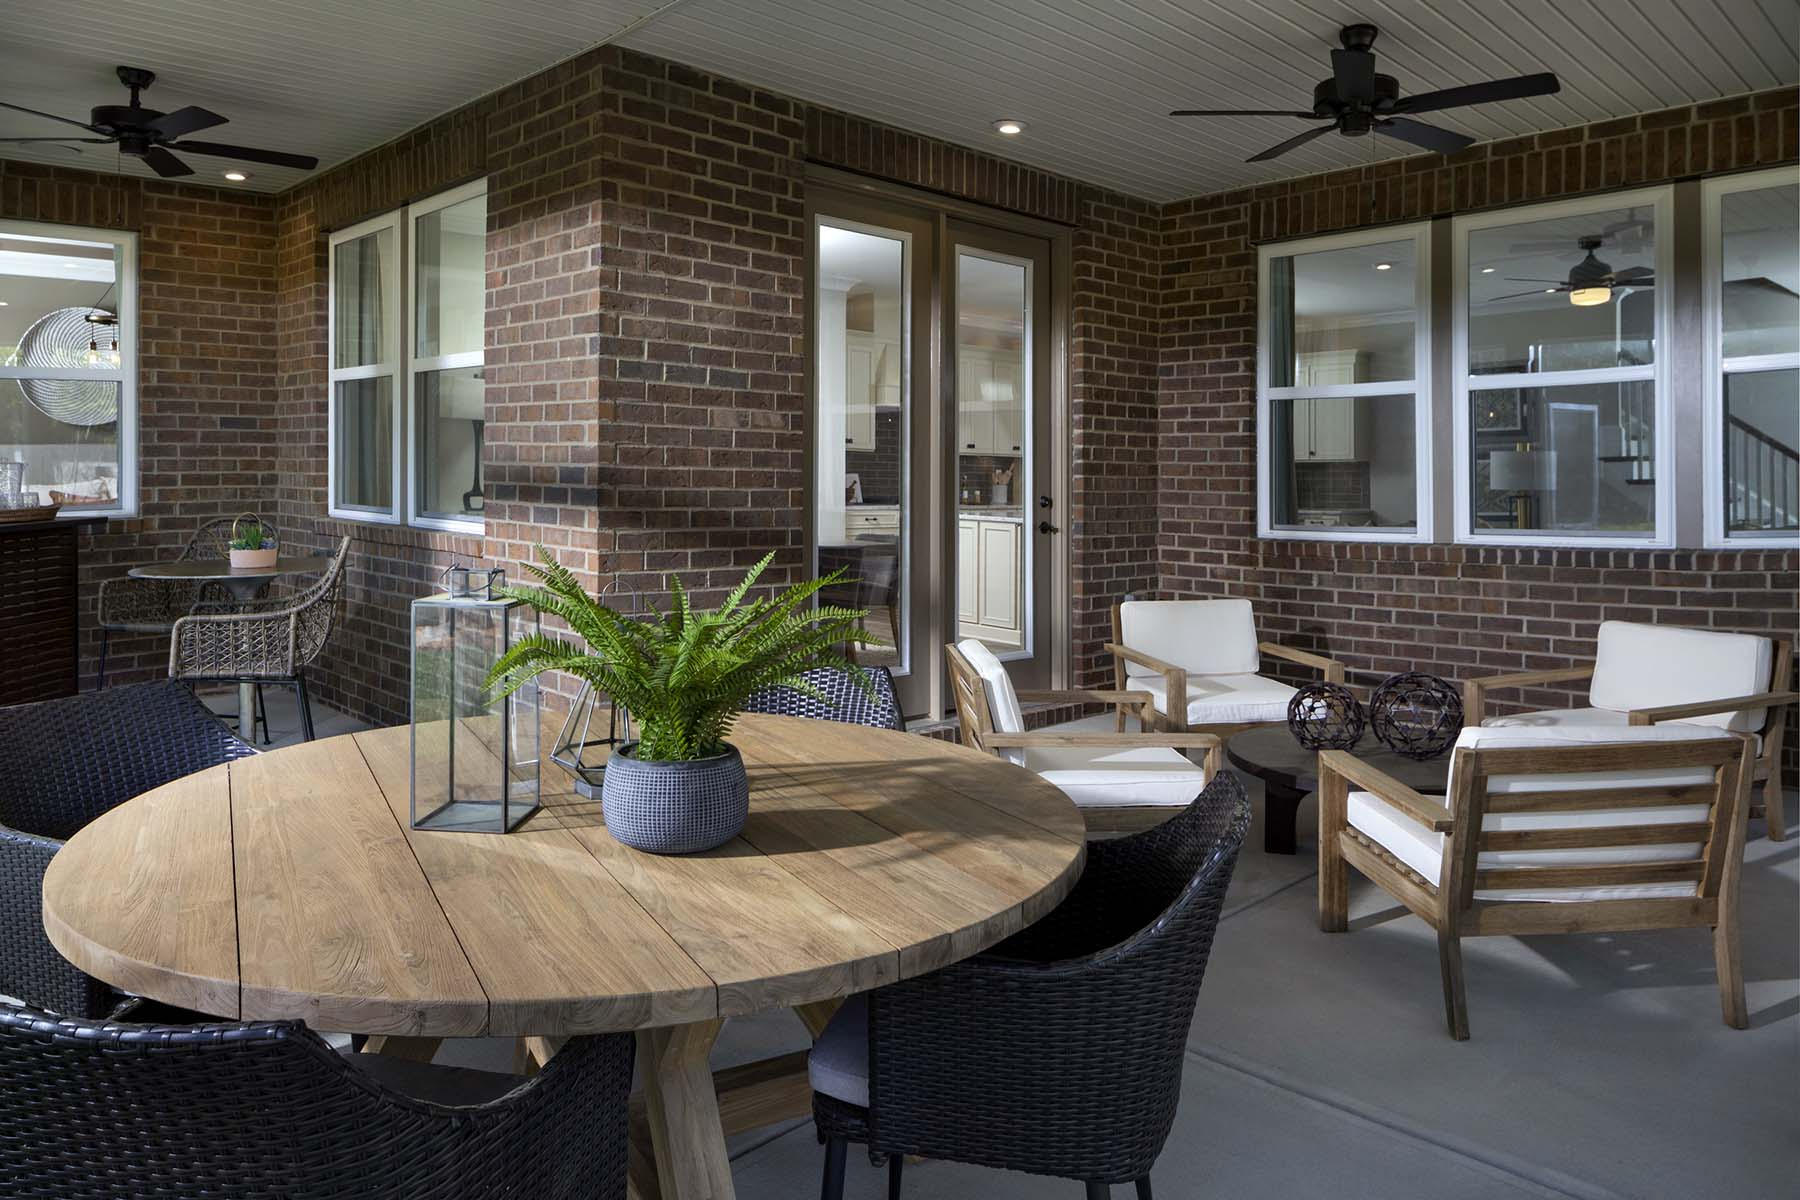 Armstrong Plan Patio at Sonata at Mint Hill in Mint Hill North Carolina by Mattamy Homes